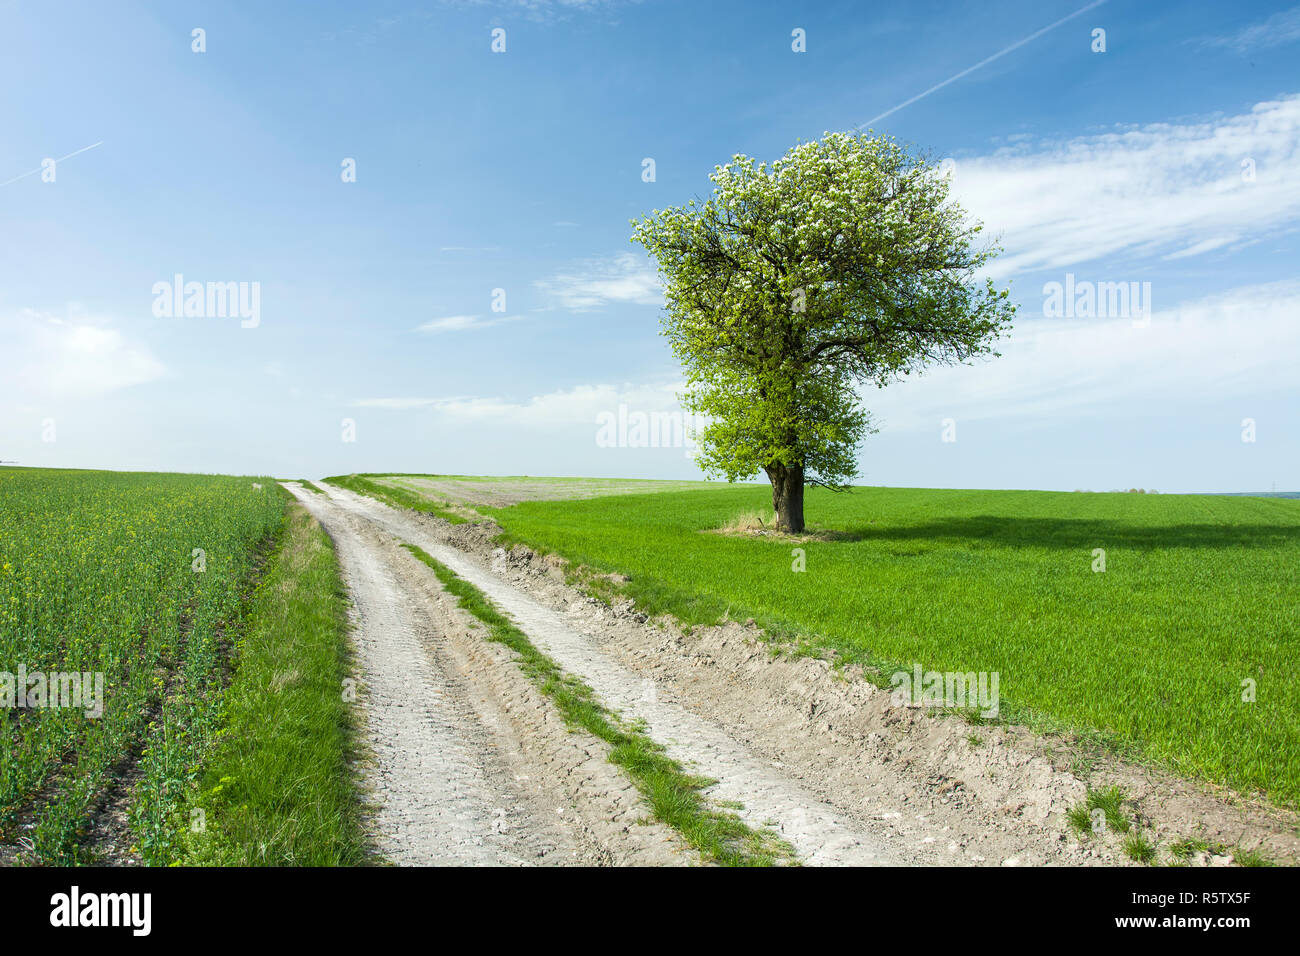 Large flourishing deciduous tree by the road in a green field, horizon and clouds on blue sky - Stock Image